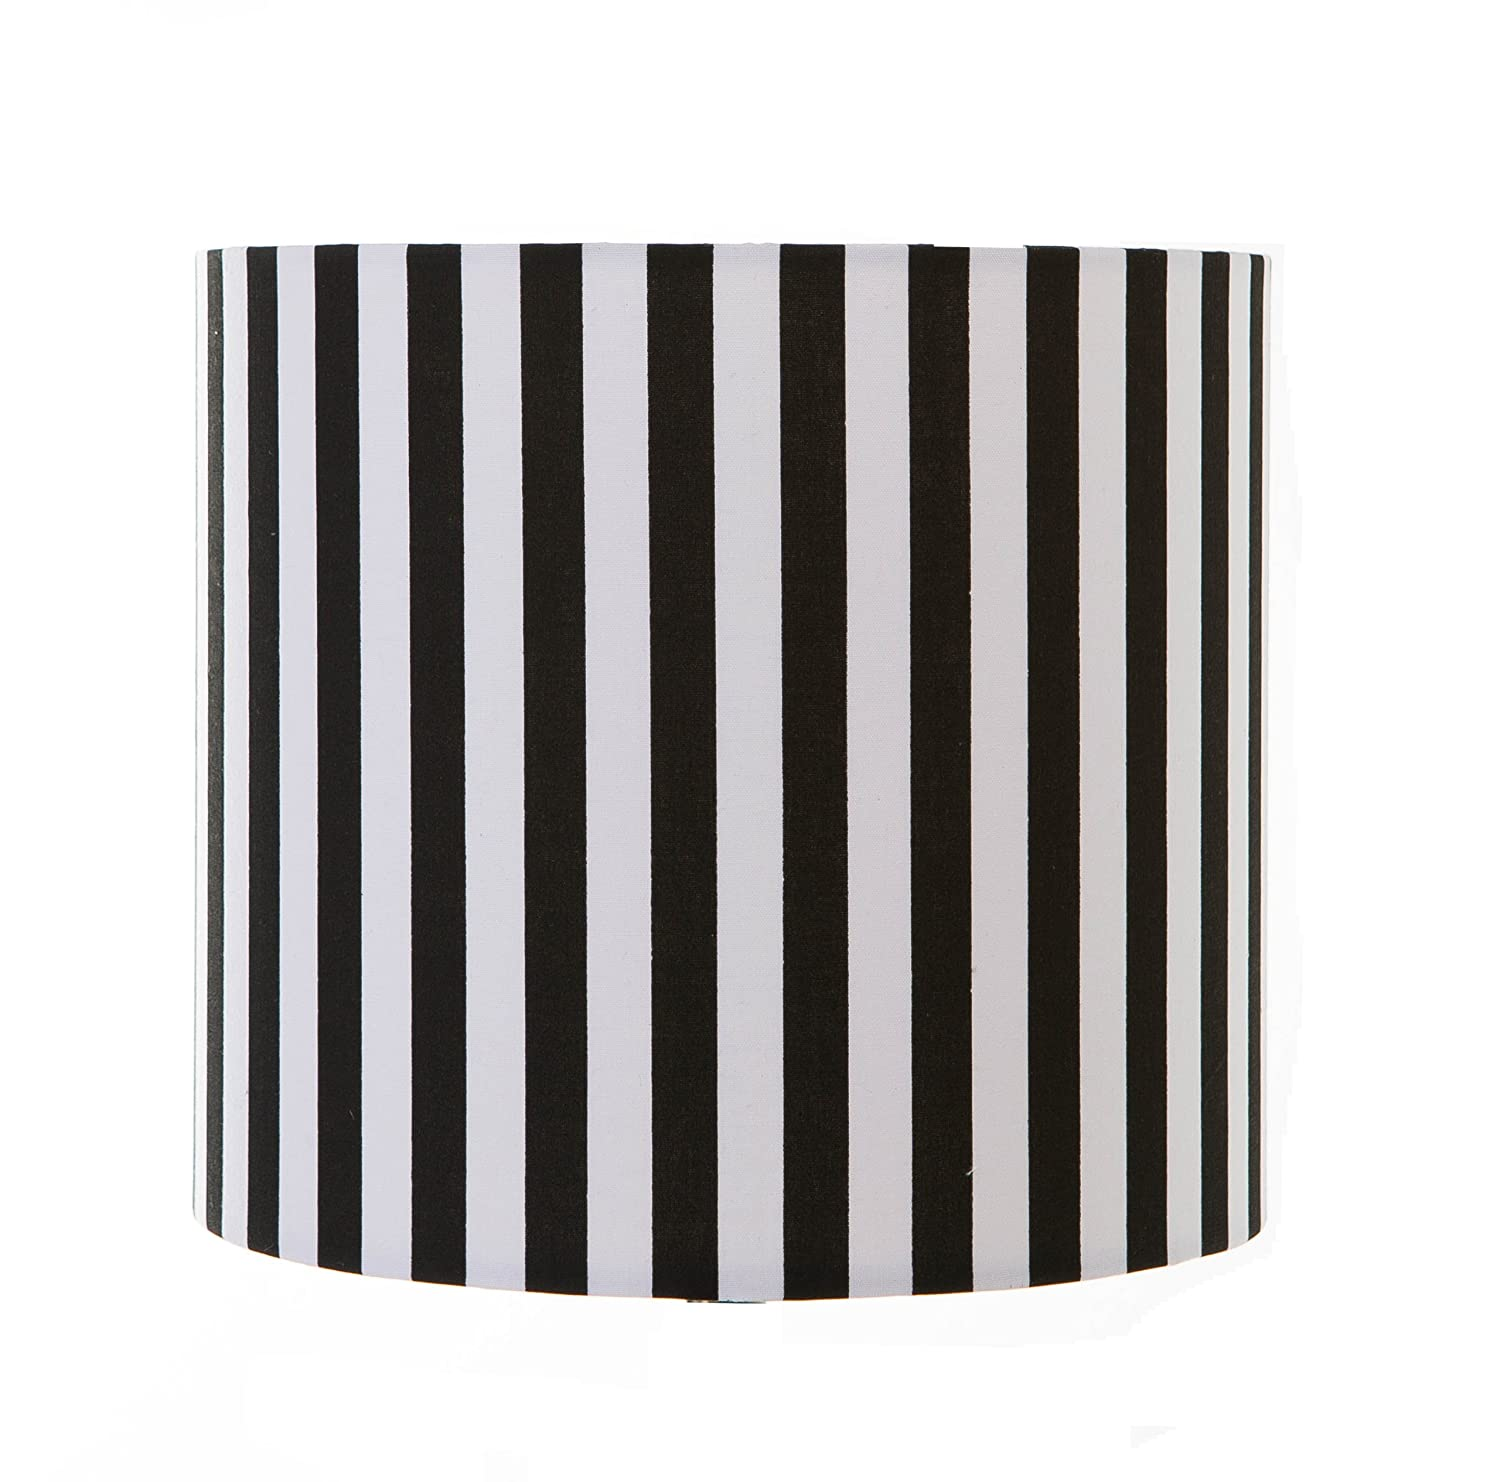 8drum cylinder lampshade black white stripe amazon 8drum cylinder lampshade black white stripe amazon lighting mozeypictures Image collections